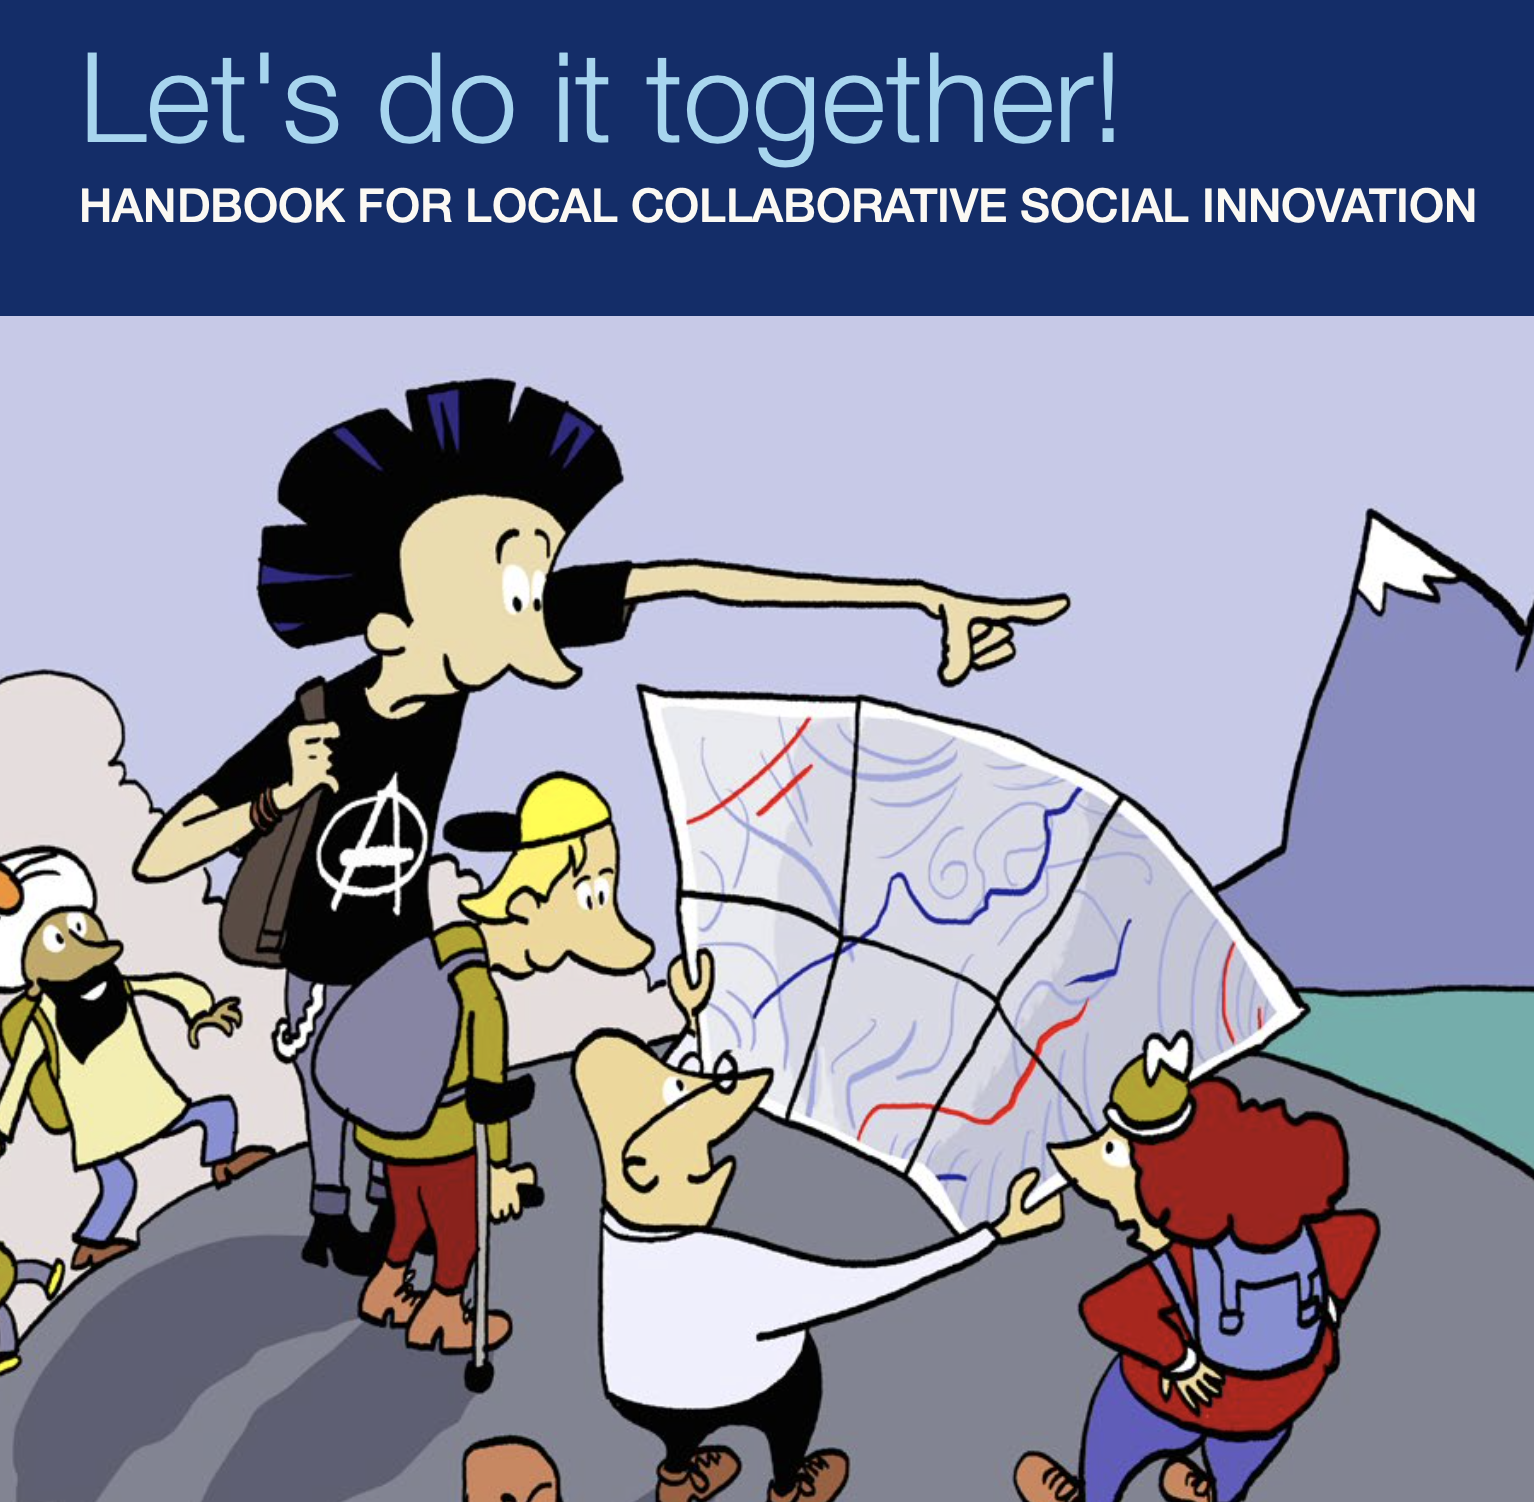 Let's do it together! Handbook for  local collaborative social innovation